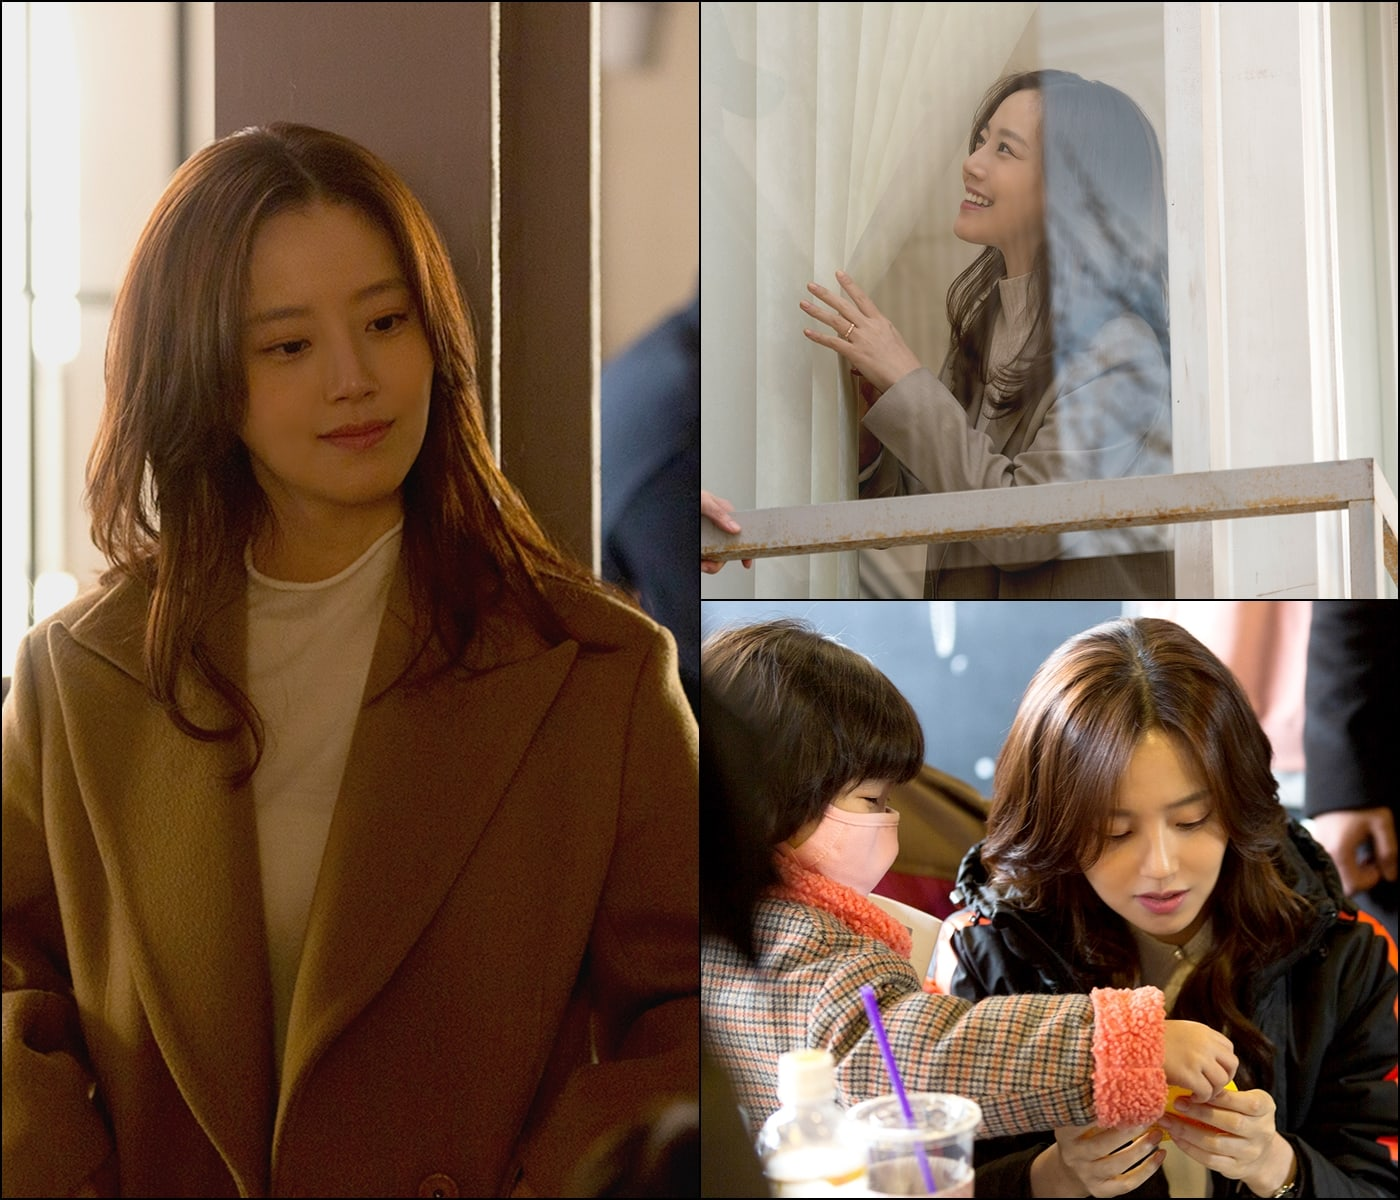 moon-chae-won-behind-the-scenes-stills-flower-of-evil-1